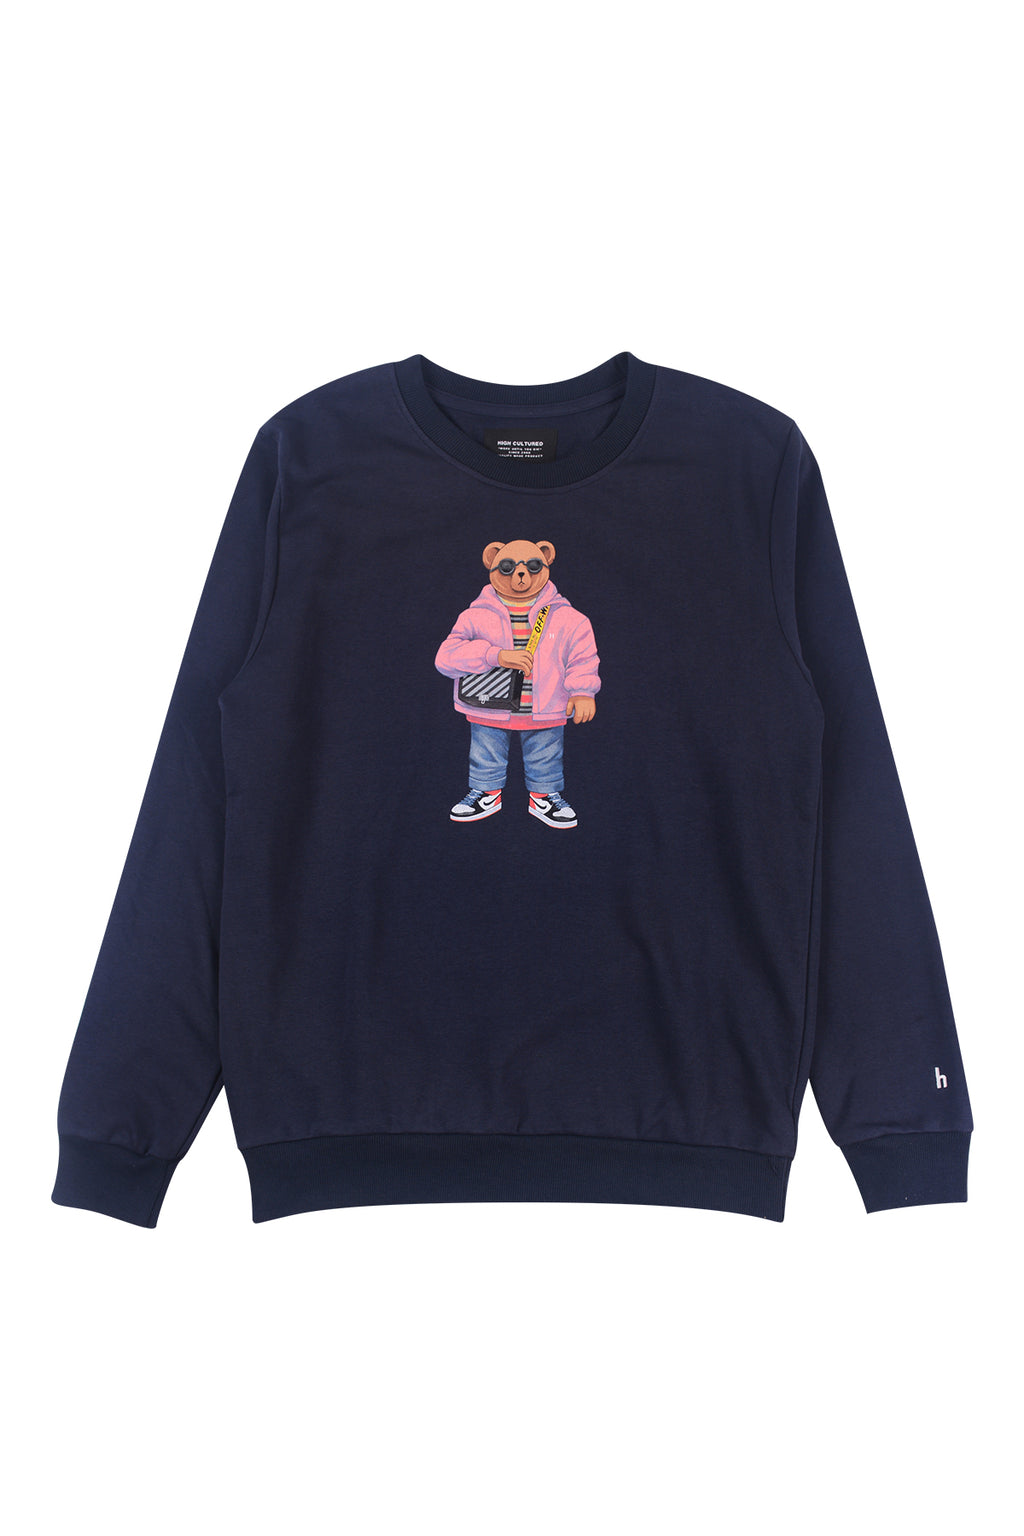 """LUKE, THE BAGGY BEAR"" SWEATER - 184"